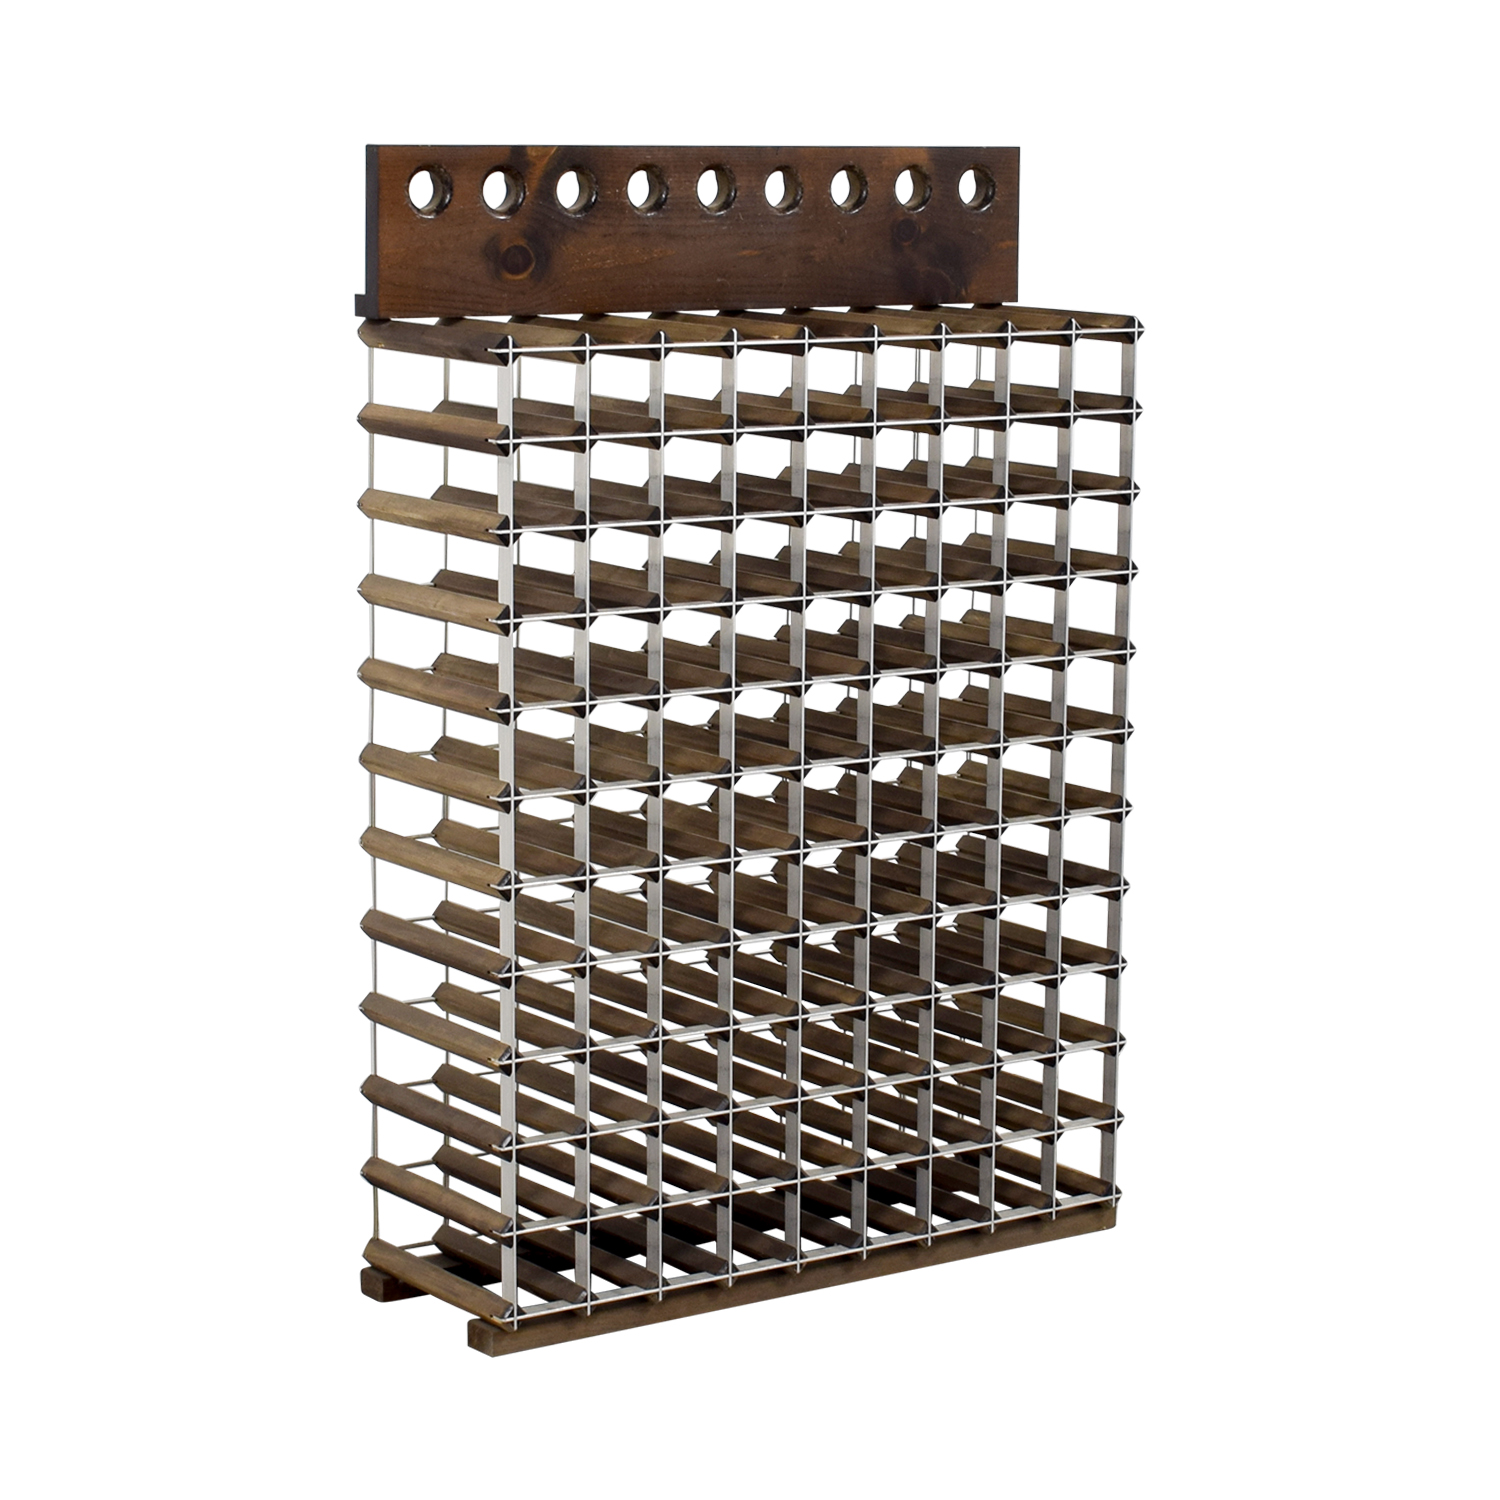 Decorative Metal Wine Racks Decorative Metal Wine Racks